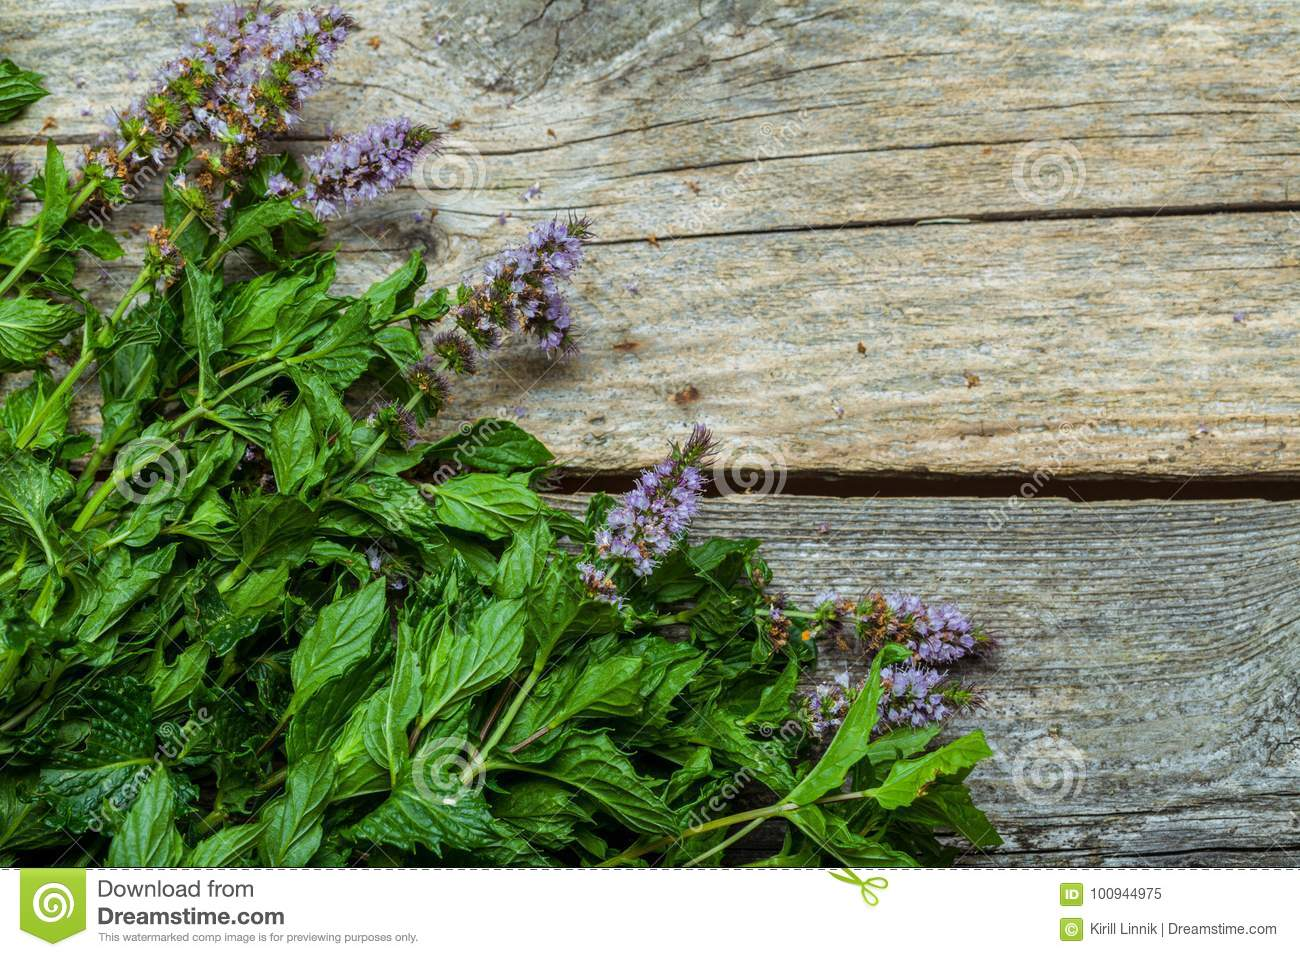 Download Spearmint on the table stock image. Image of fresh, foliage - 100944975